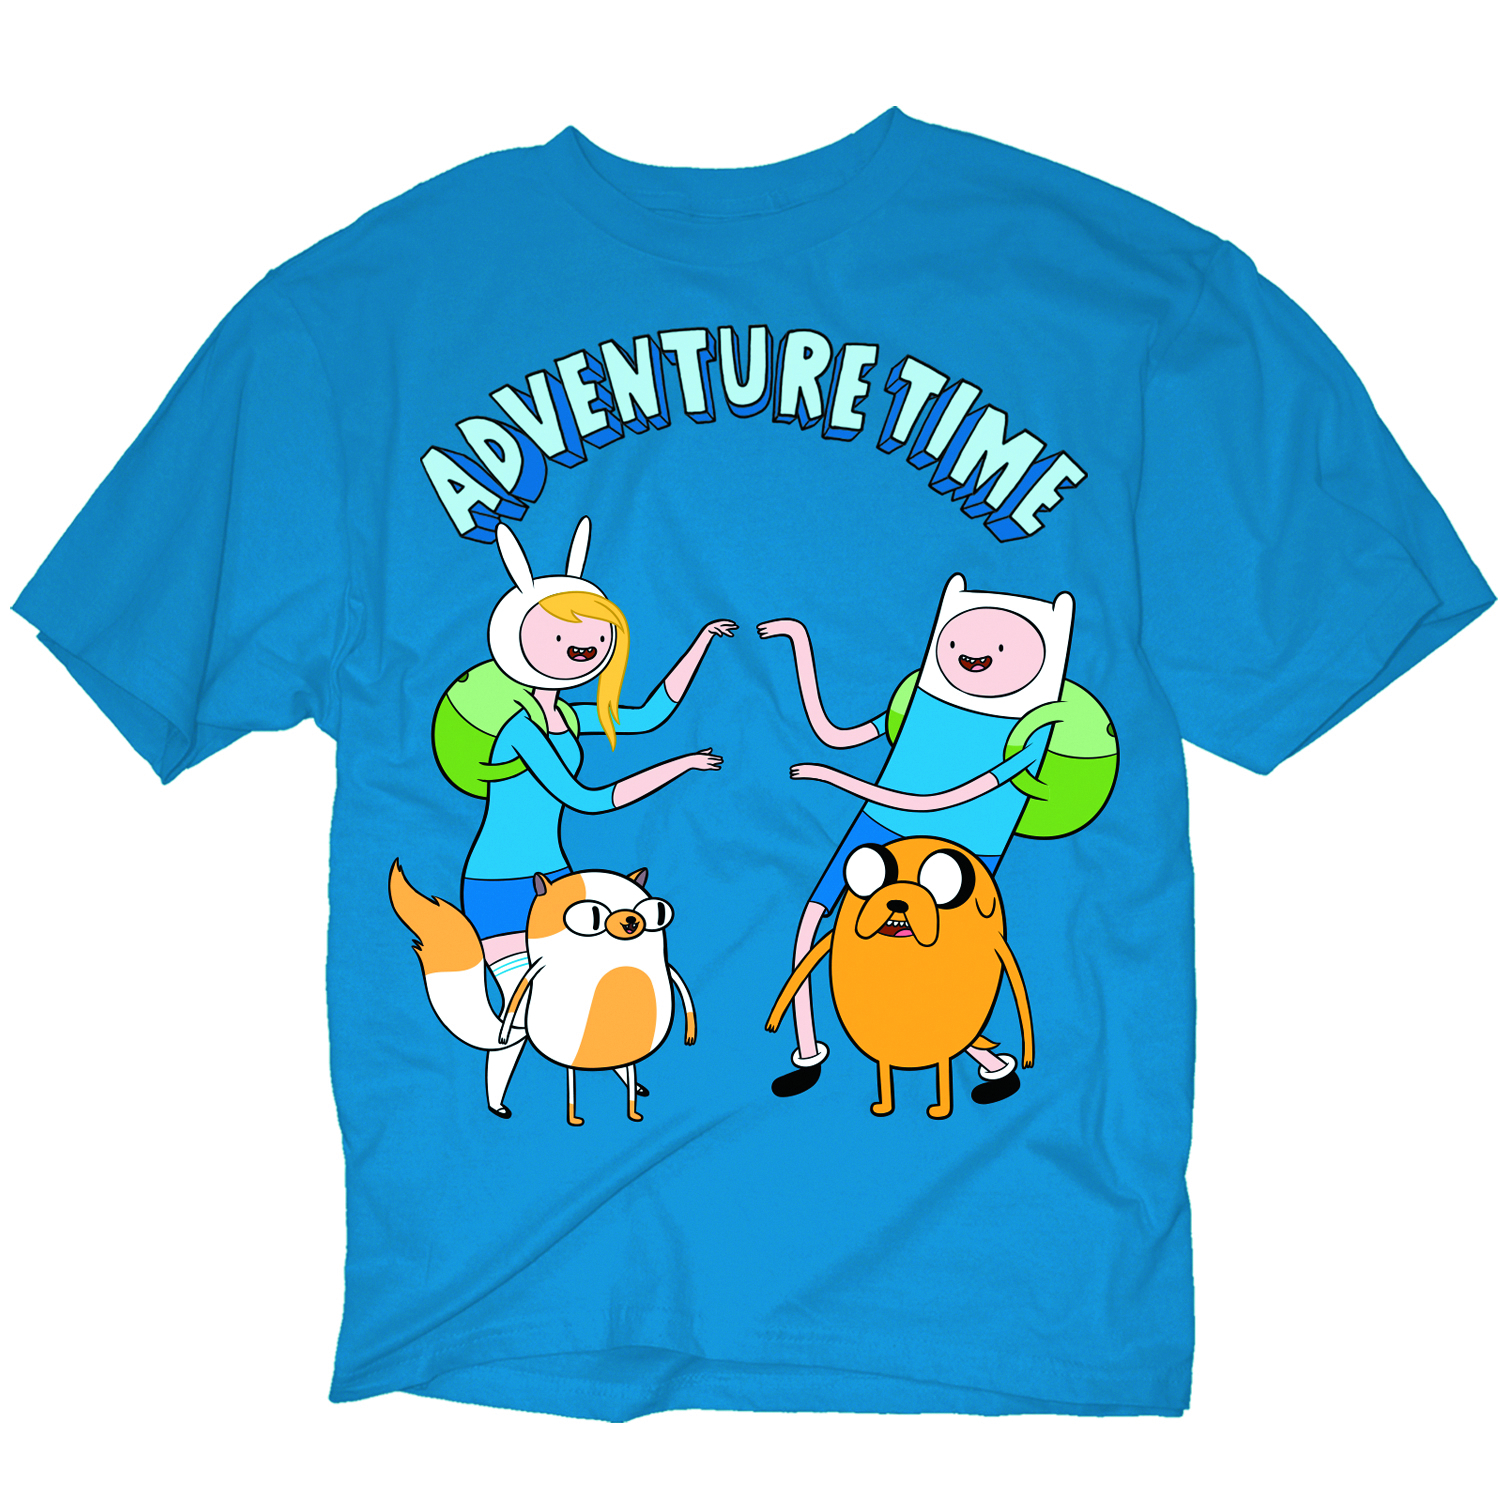 ADVENTURE TWINS PX BLUE T/S XXL